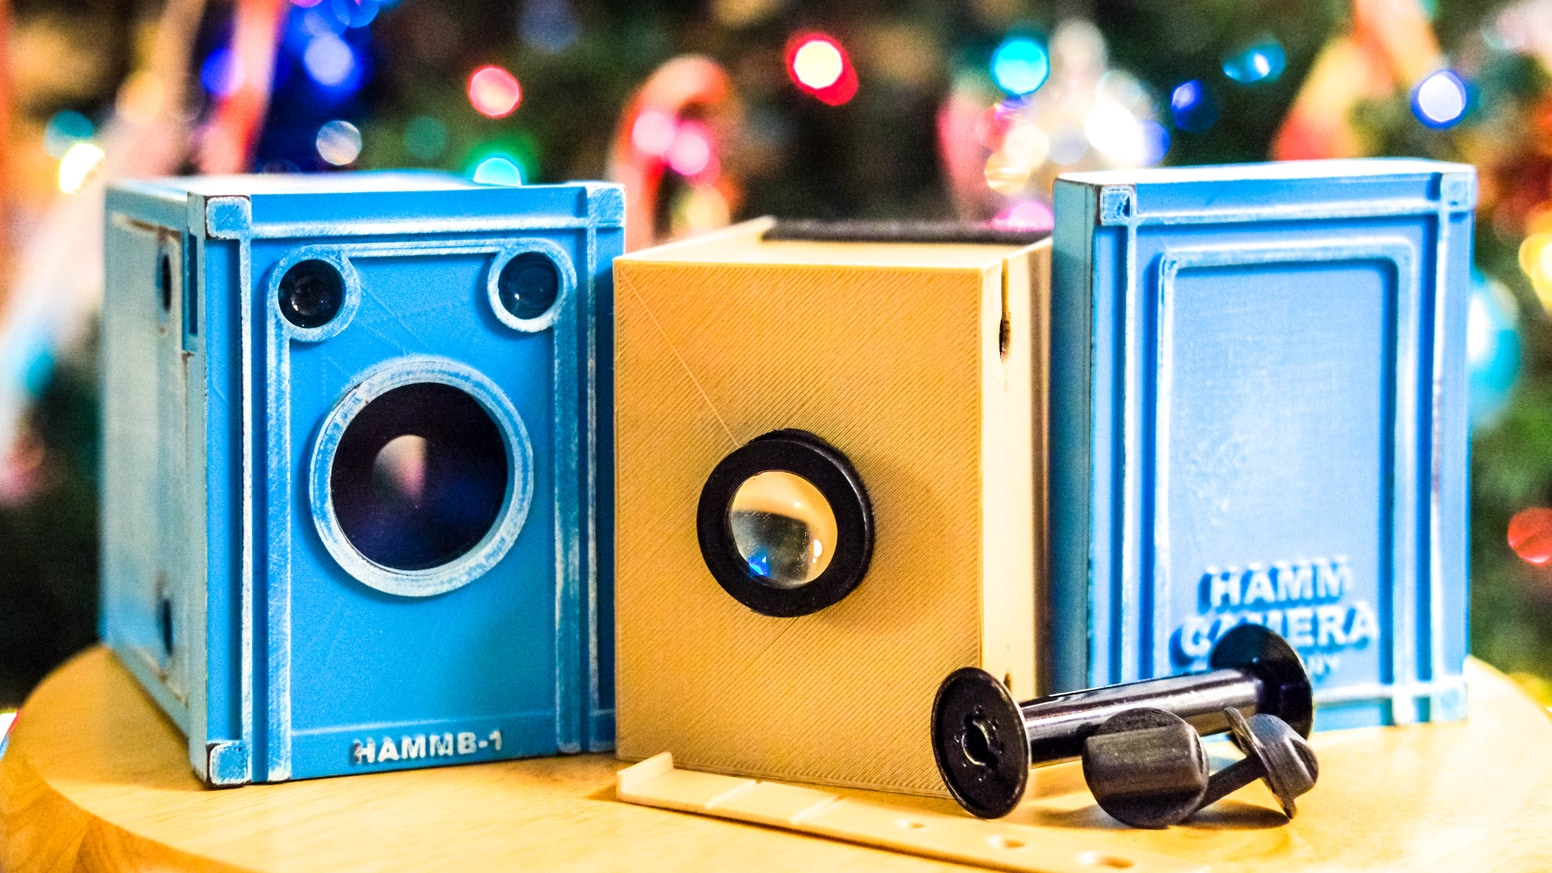 Enjoy street & portrait photography like never before with the NuBox 1. Our interchangeable lens, wide aperture, 120 film box camera!